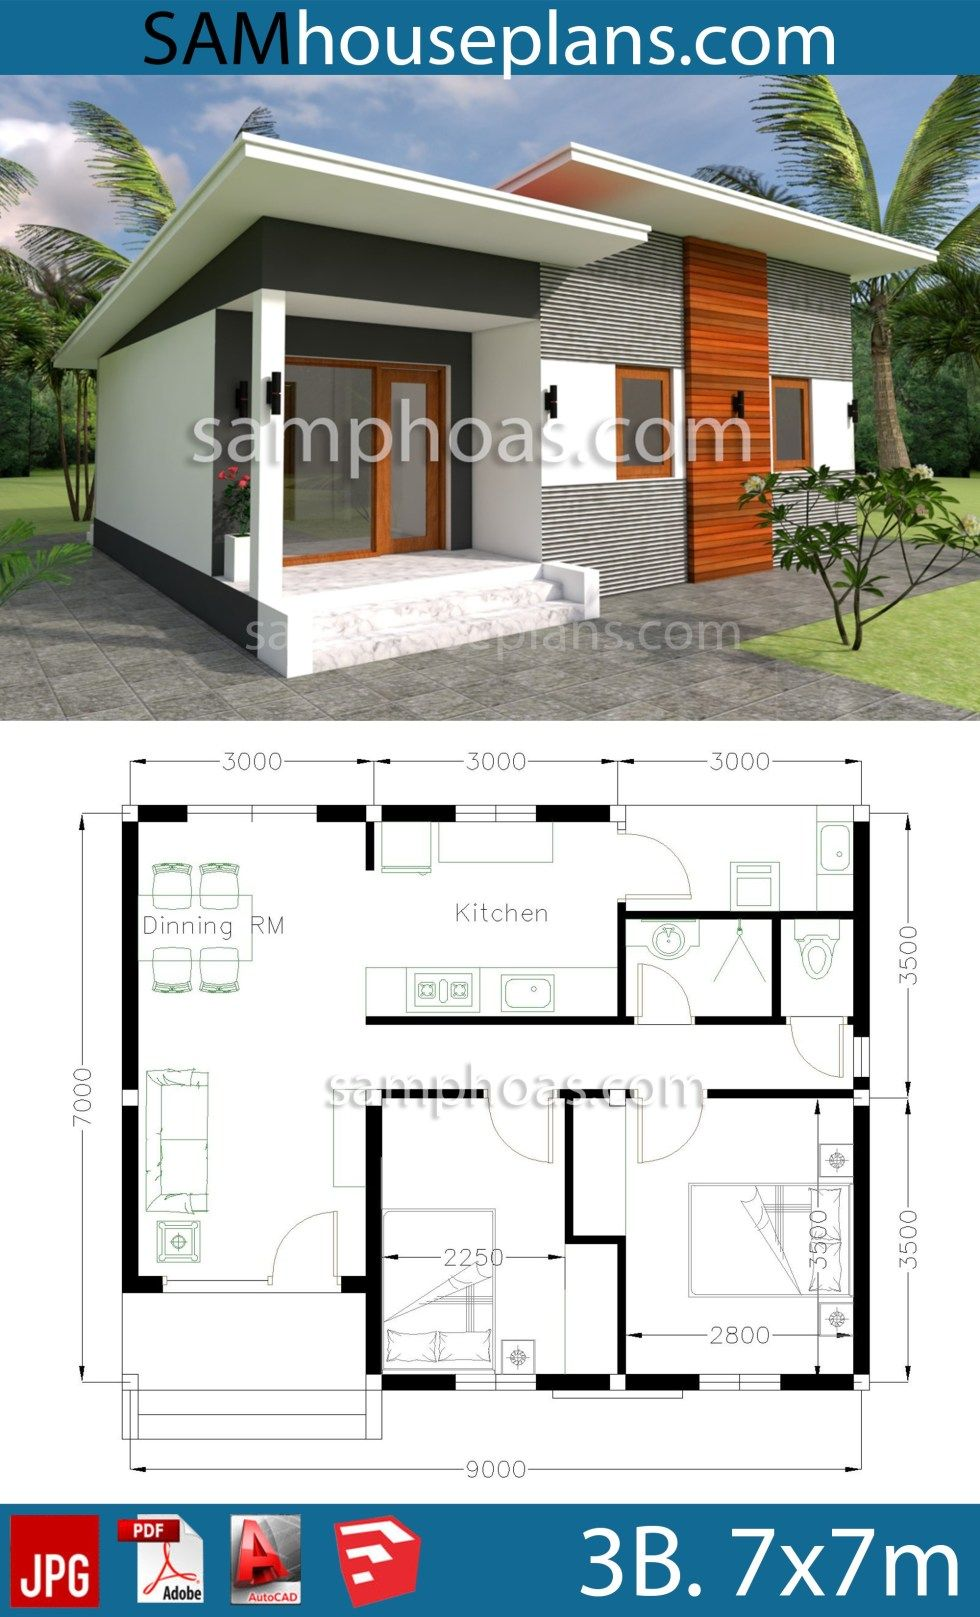 House plans 8x8m with 8 Bedrooms - Sam House Plans  Small house